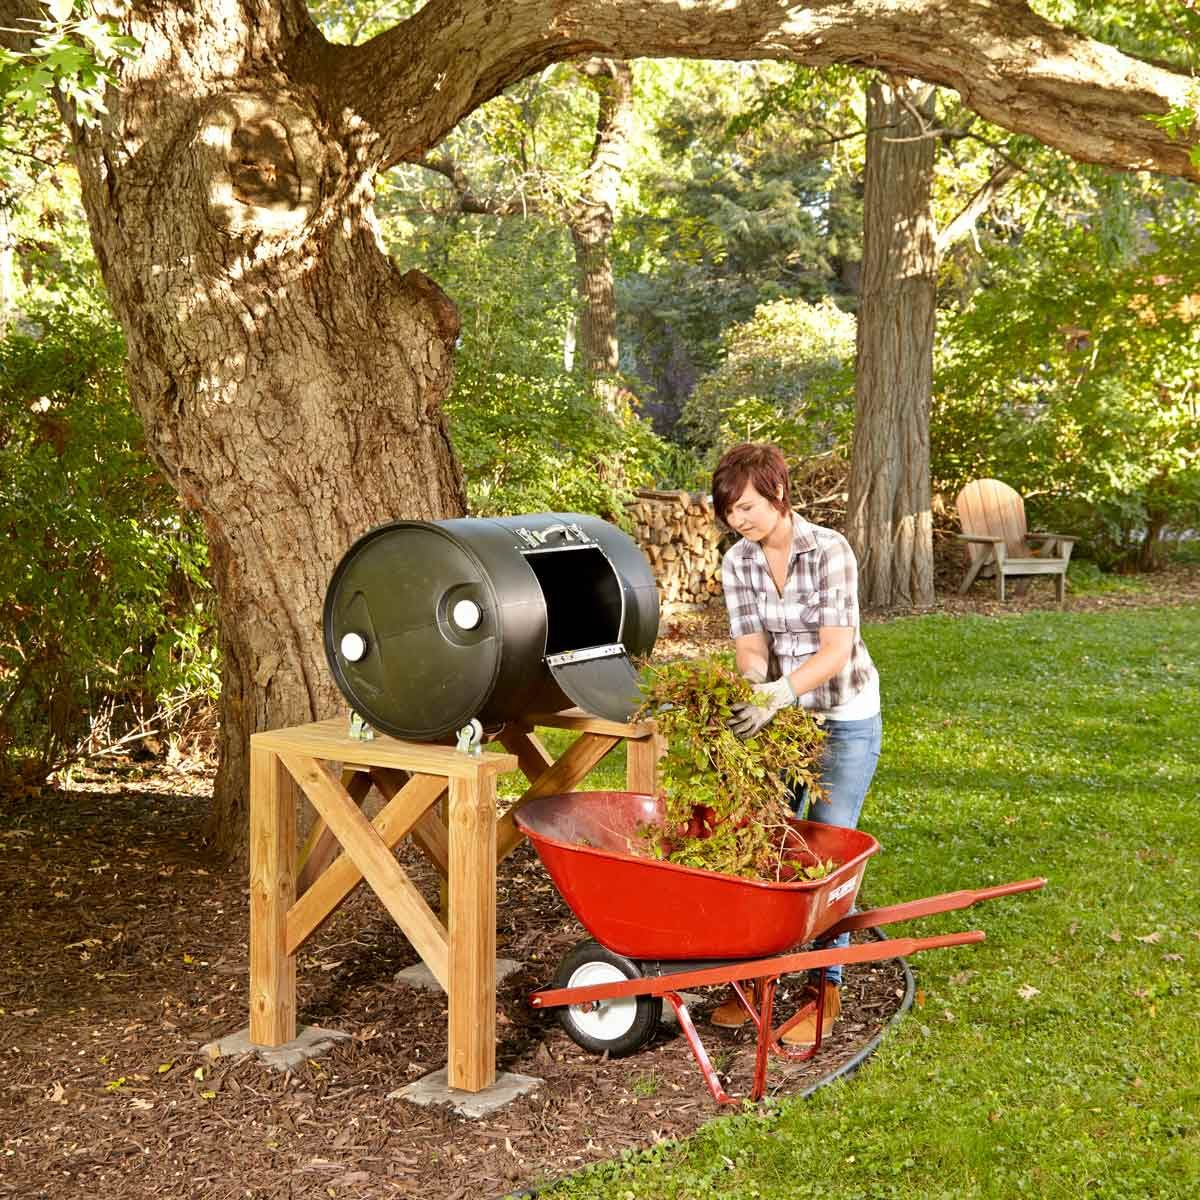 DIY Rotating Compost Barrel | 45 DIY Compost Bins To Make For Your Homestead